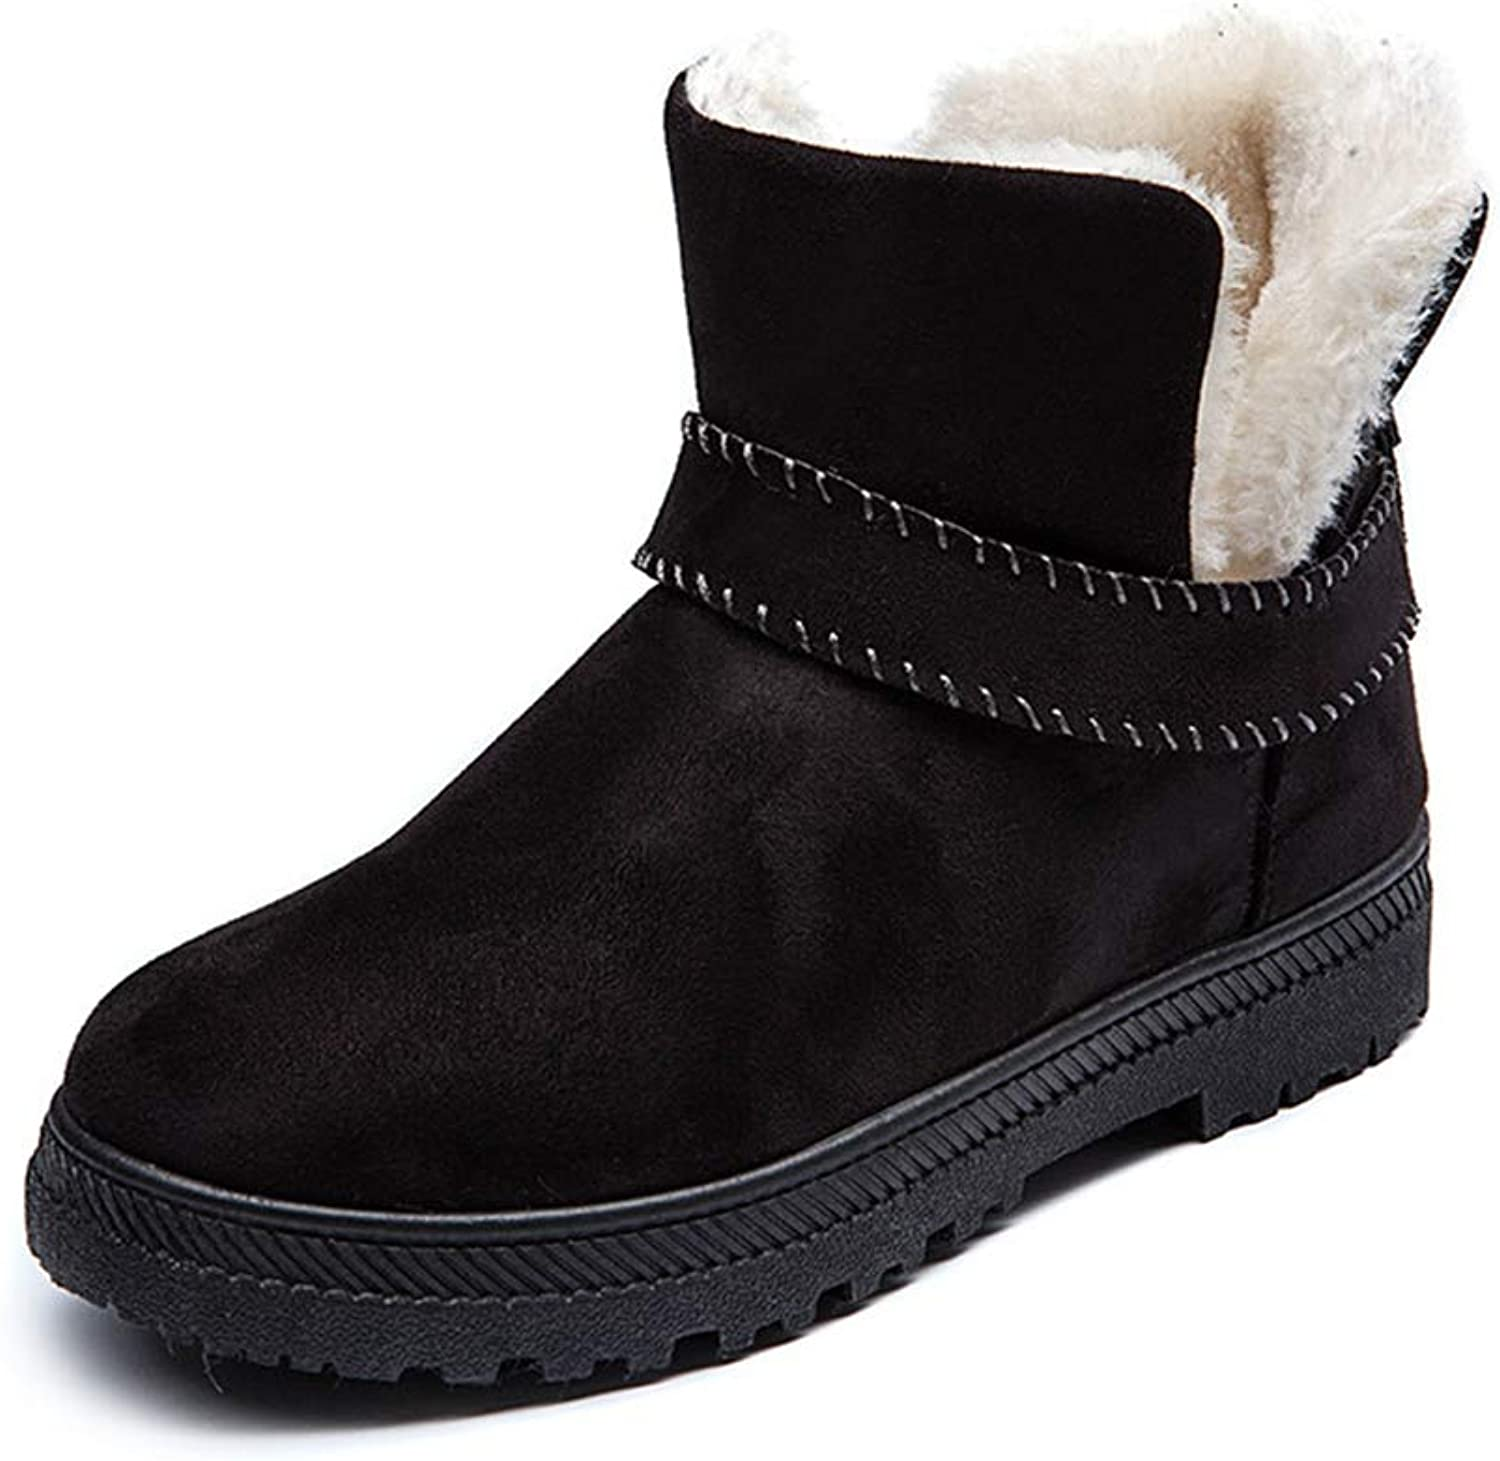 T-JULY Women's Winter Boots Ladies Ankle Boots for Girls Winter shoes Snow Boots Black Botas Plus Size 35-43